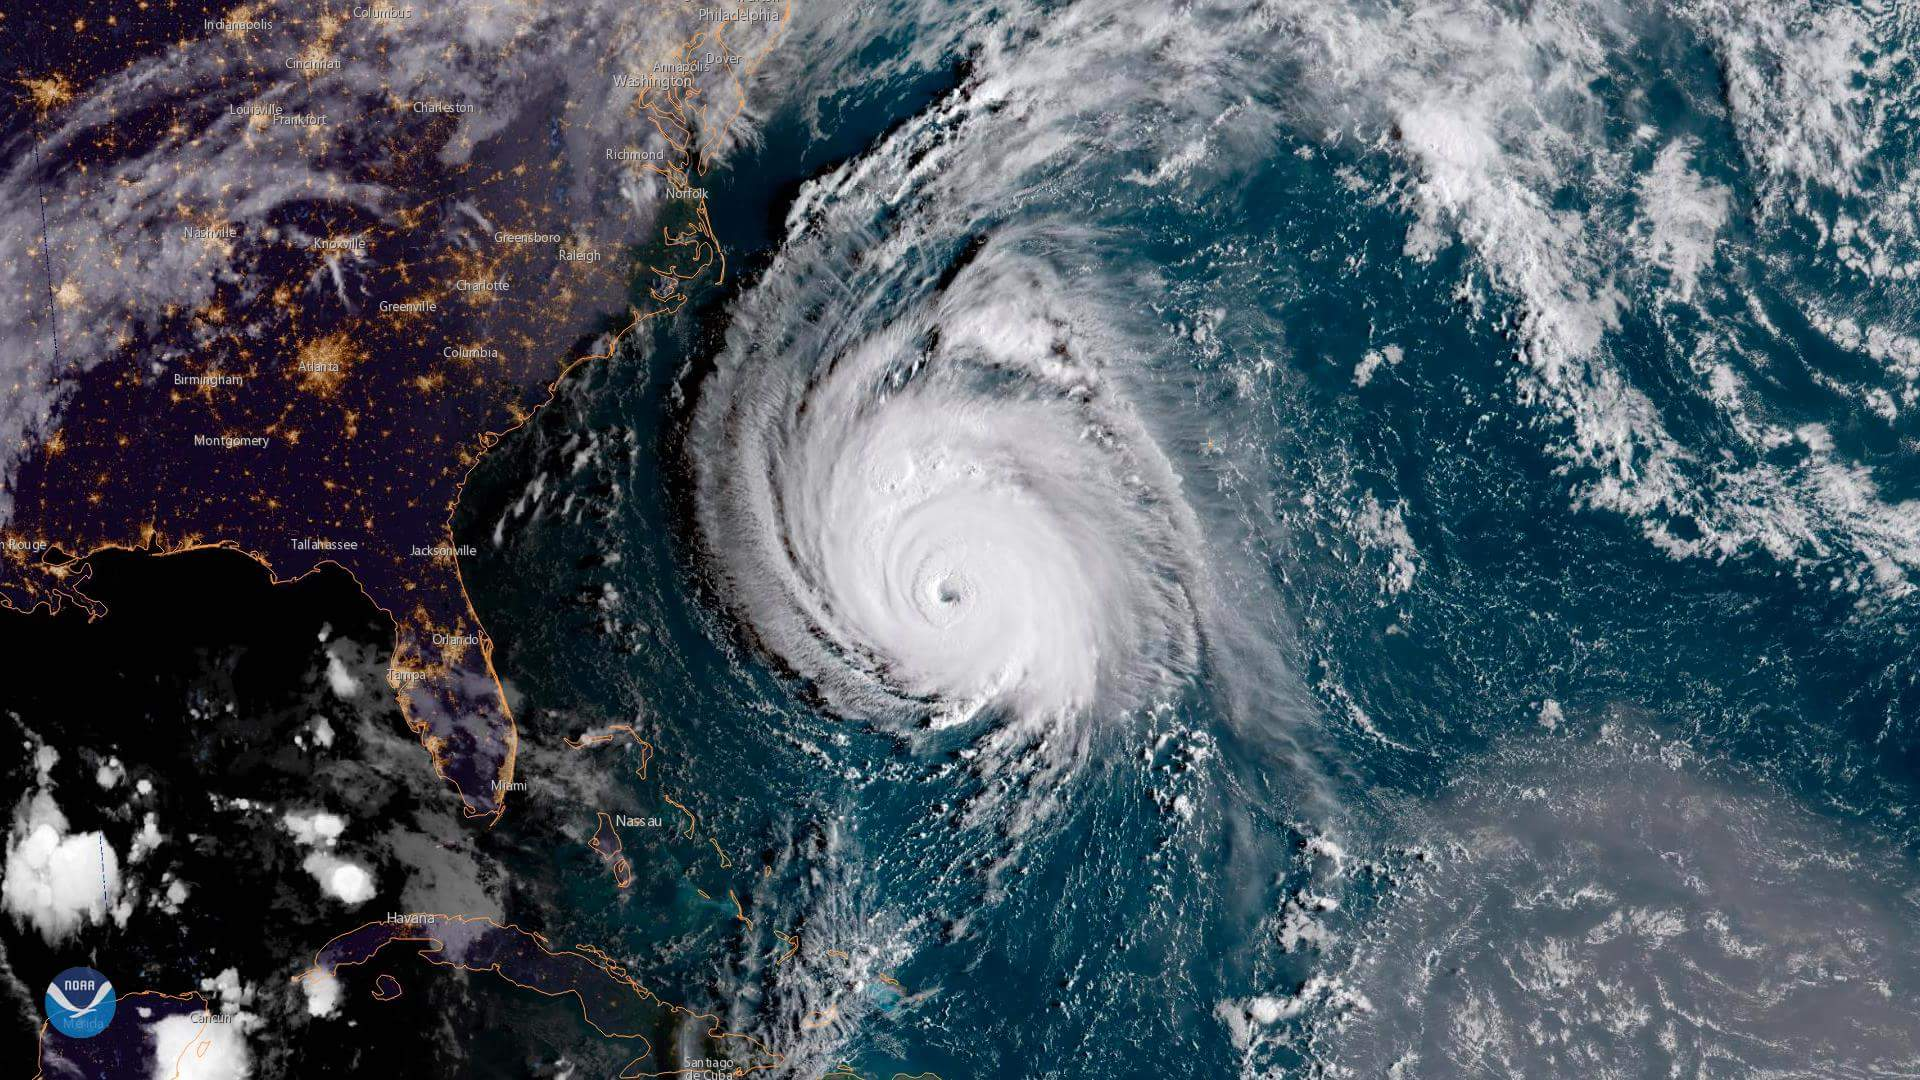 HURRICANE FLORENCE OF THE SOUTH EAST COAST OF THE UNITED STATES LAST NIGHT